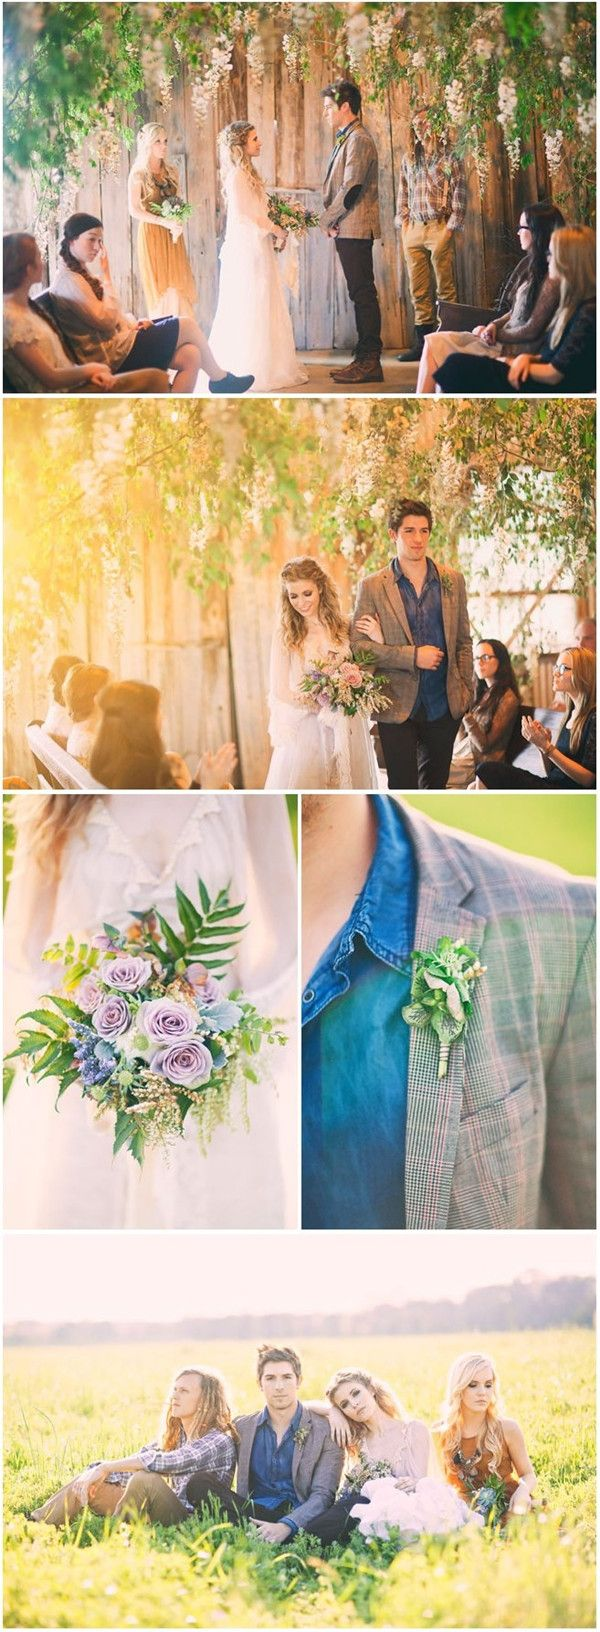 66 best wedding images on Pinterest Marriage Blue wedding